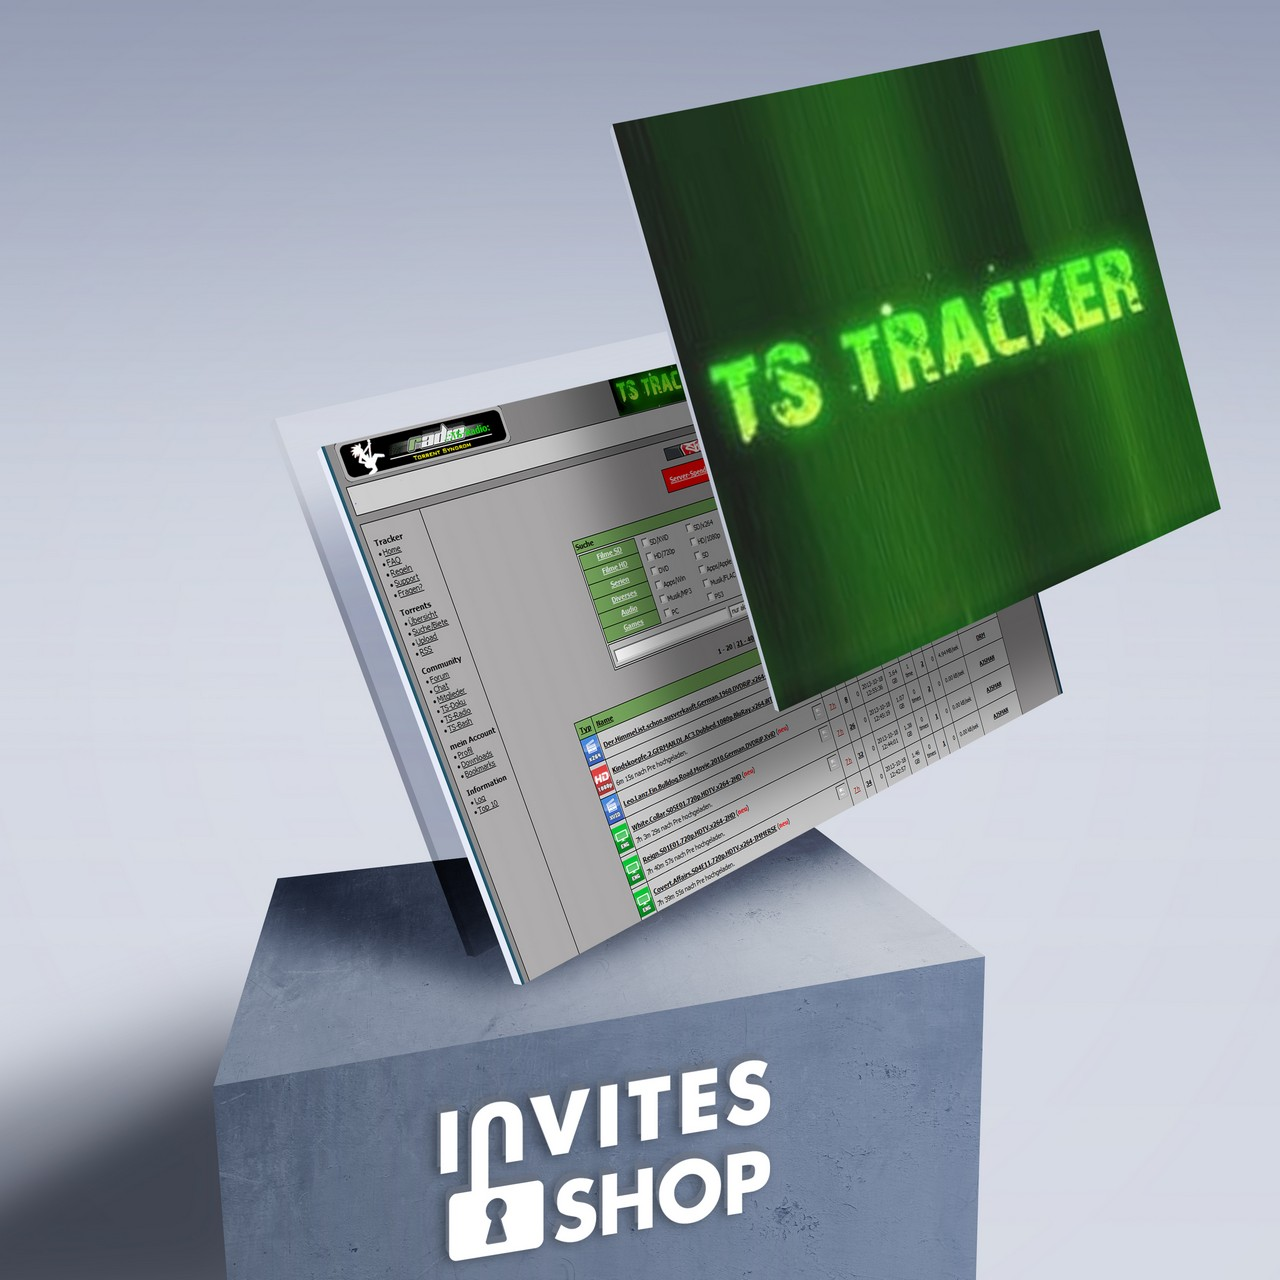 buy ts-tracker org invite or account